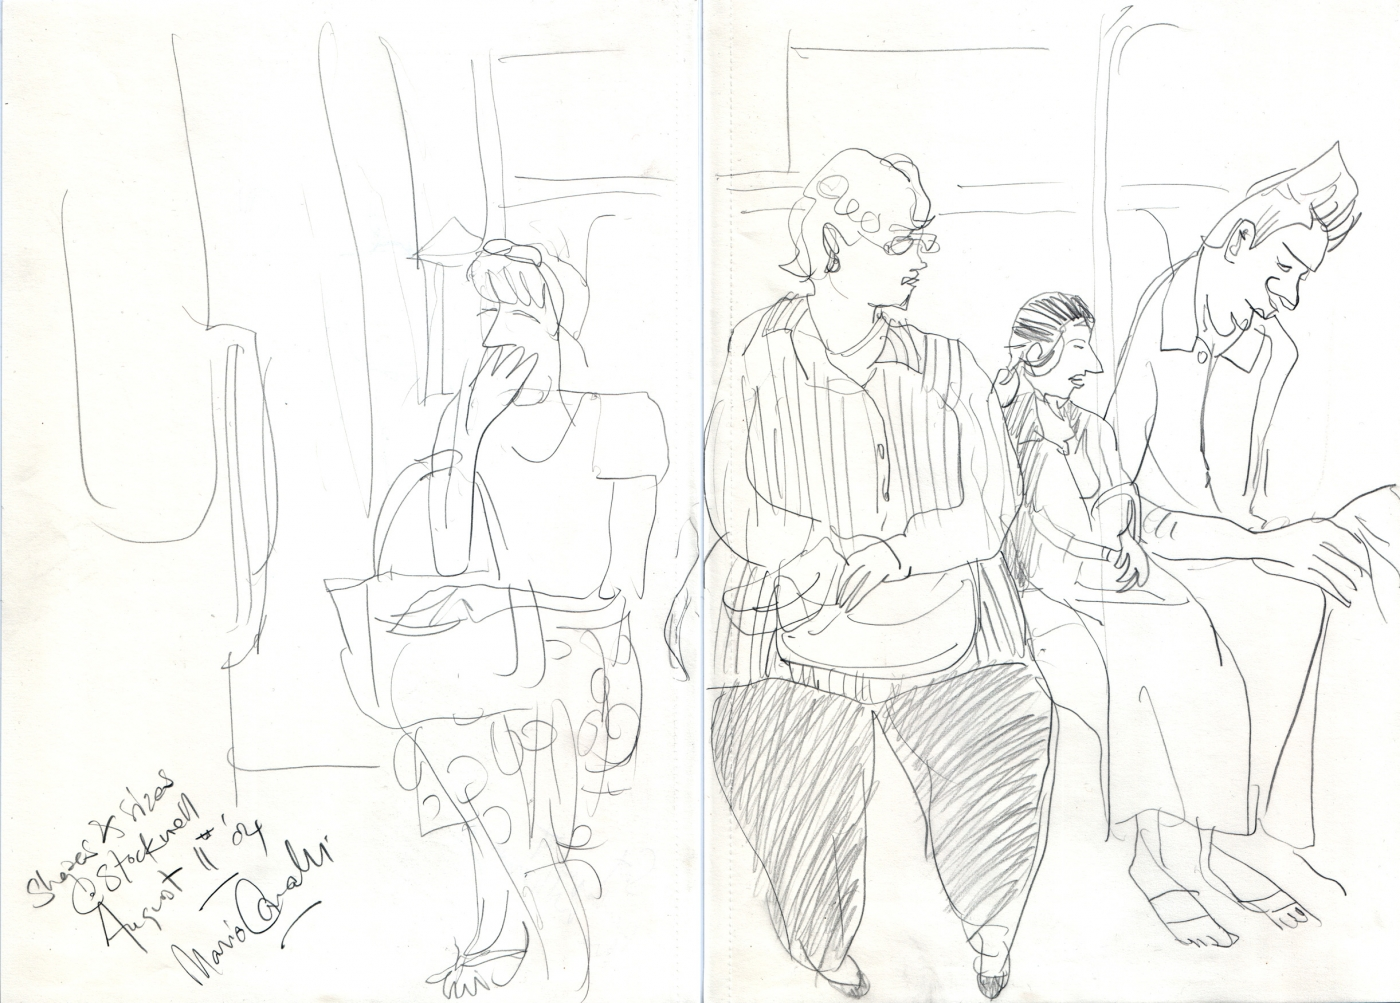 Oscar_sketch_LONDON_PEOPLE_half_adj